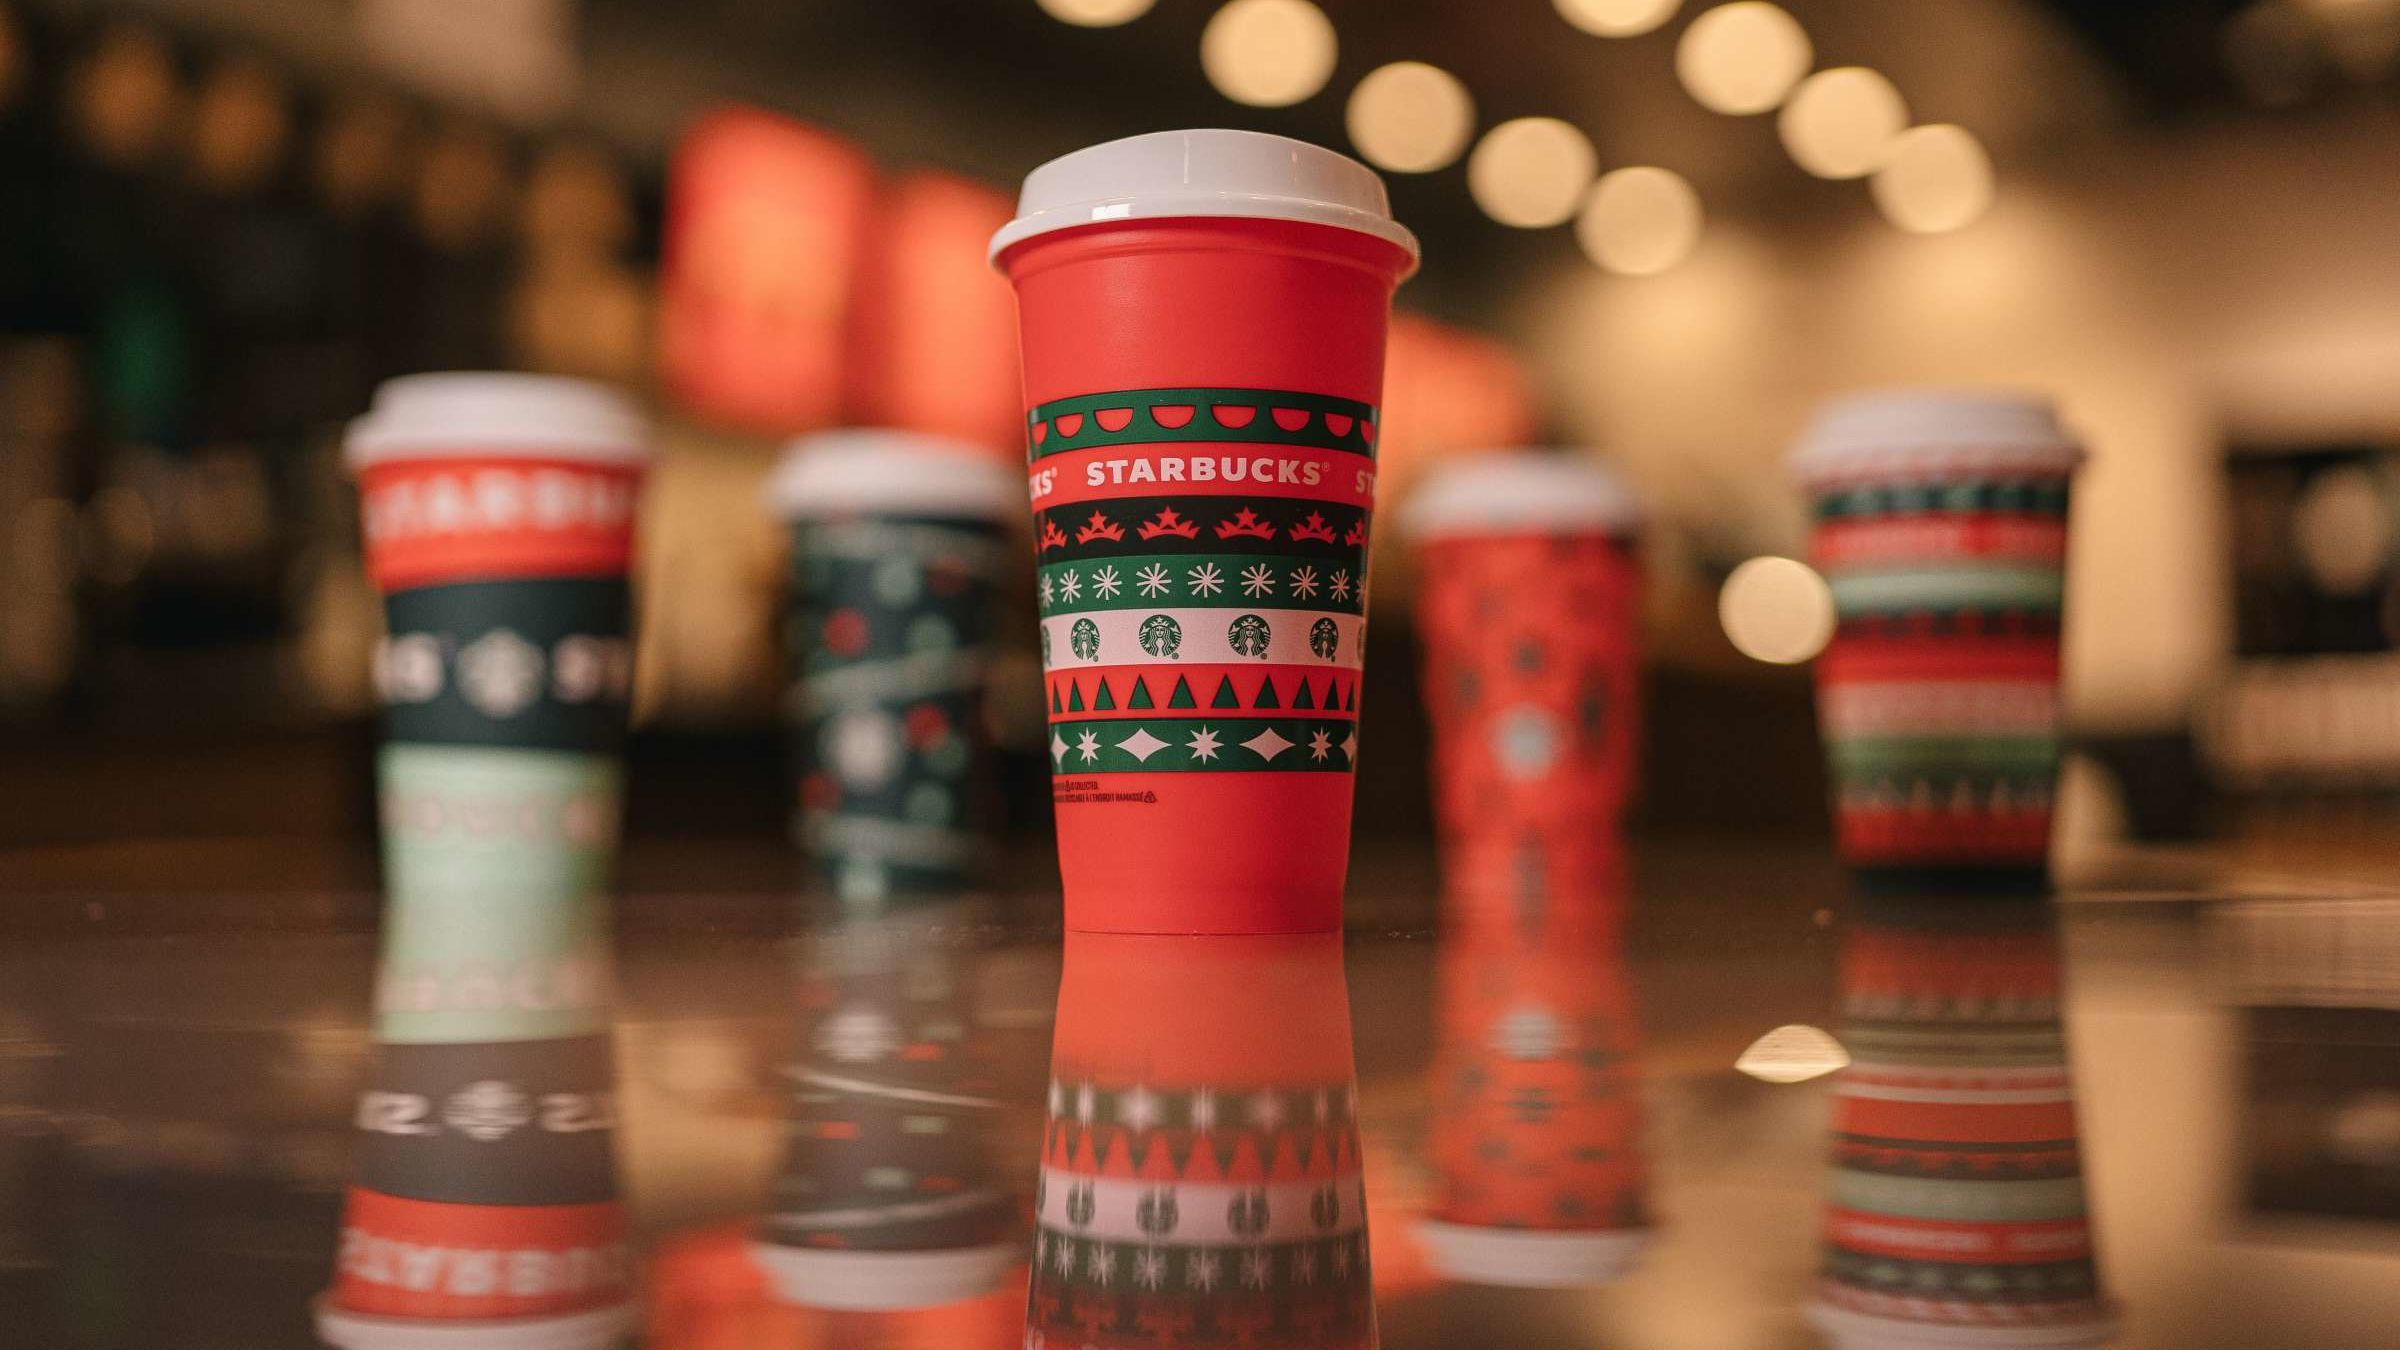 Starbucks Gives Away Free Reusable Holiday Cups 2020 ...